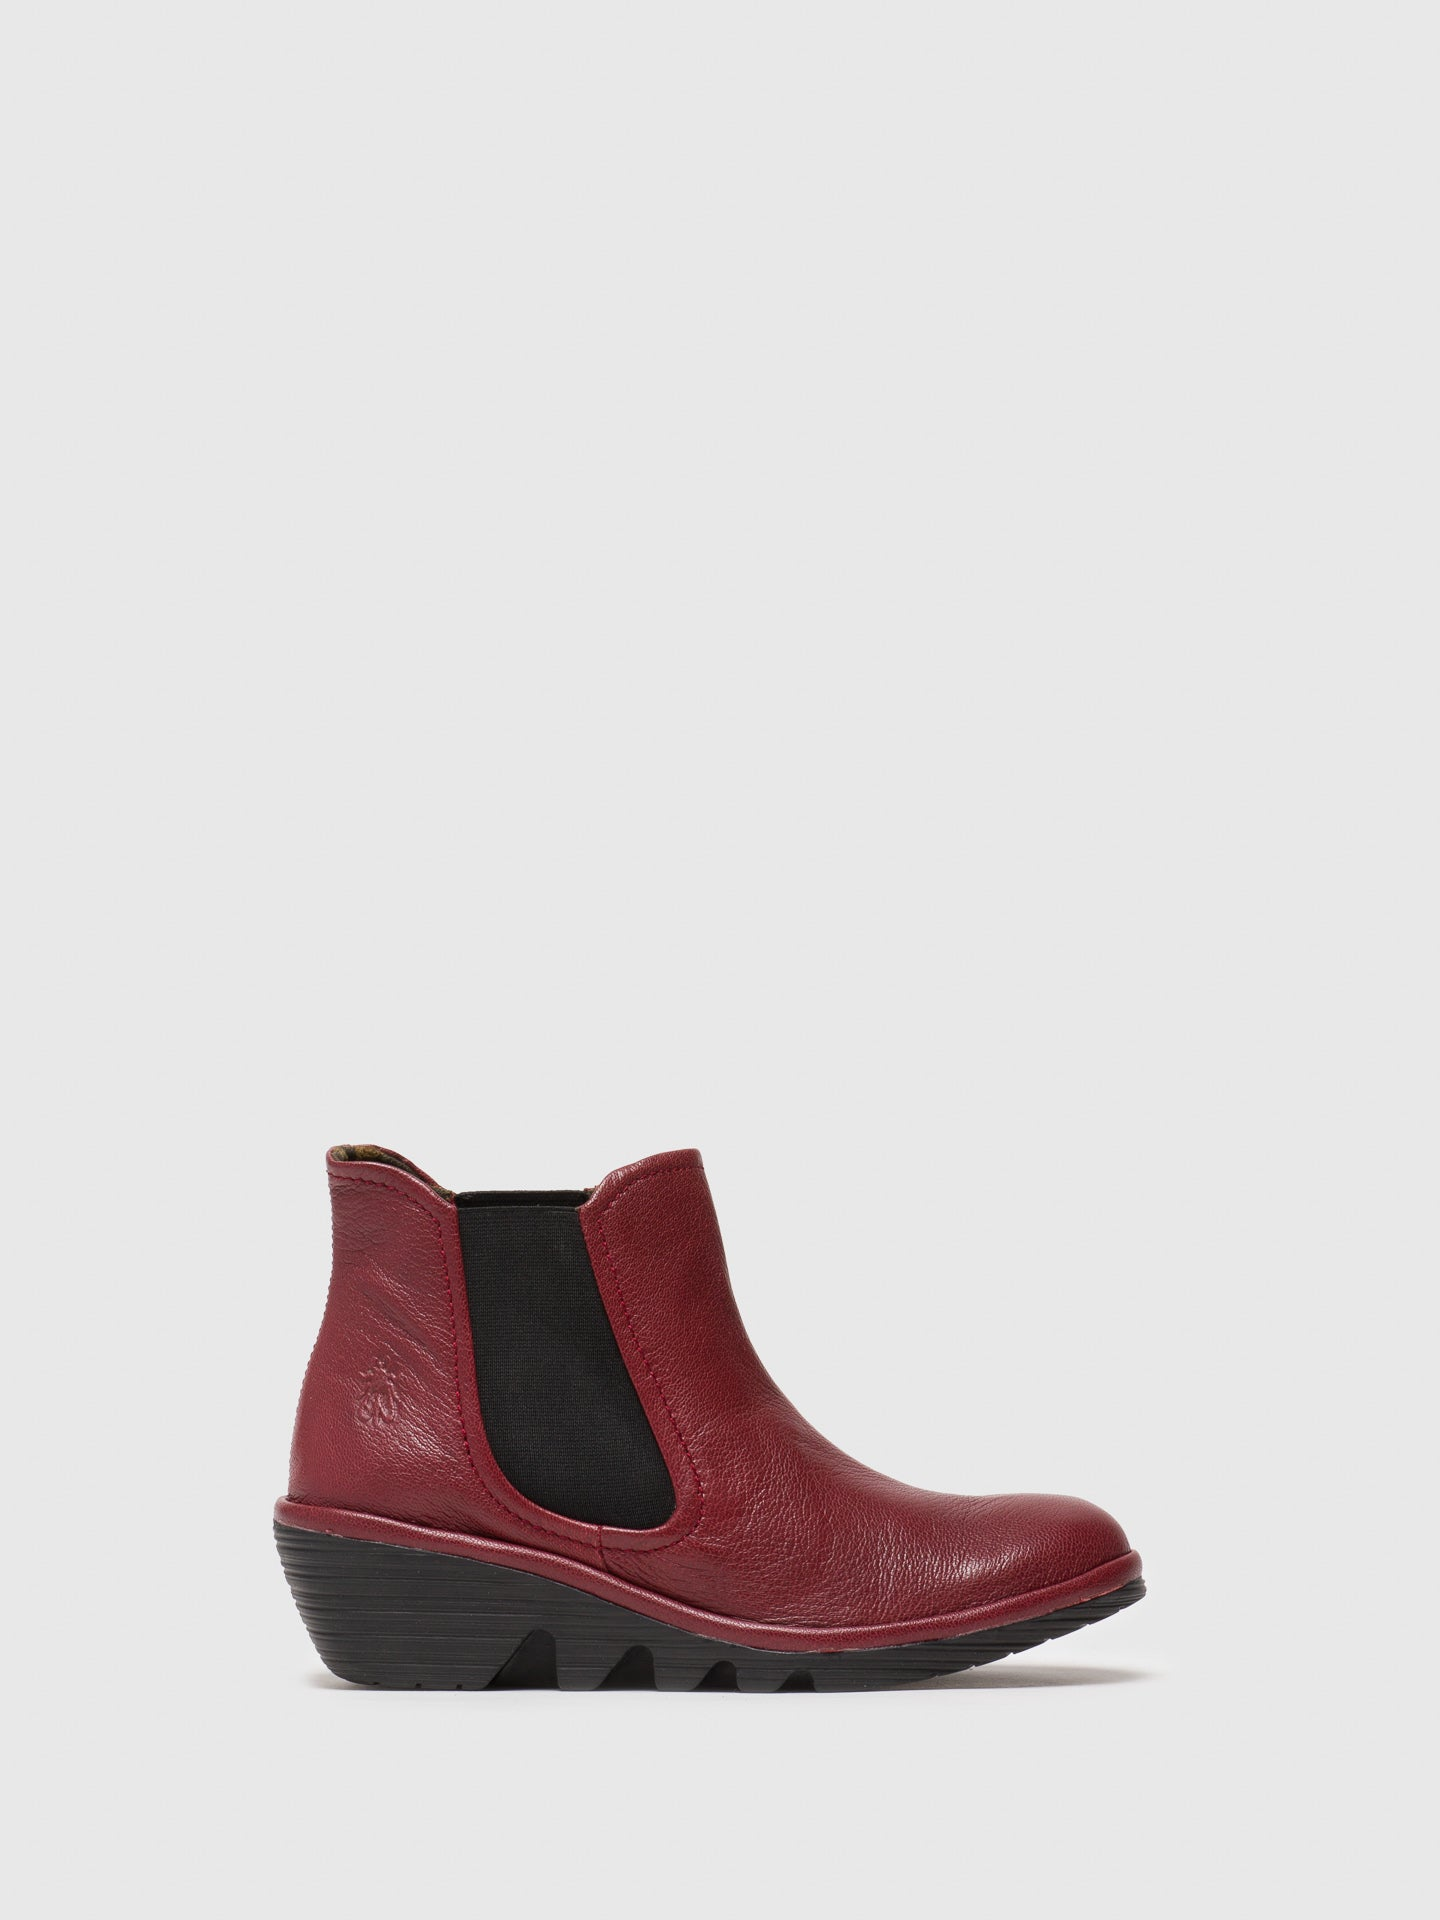 Fly London Red Leather Chelsea Ankle Boots